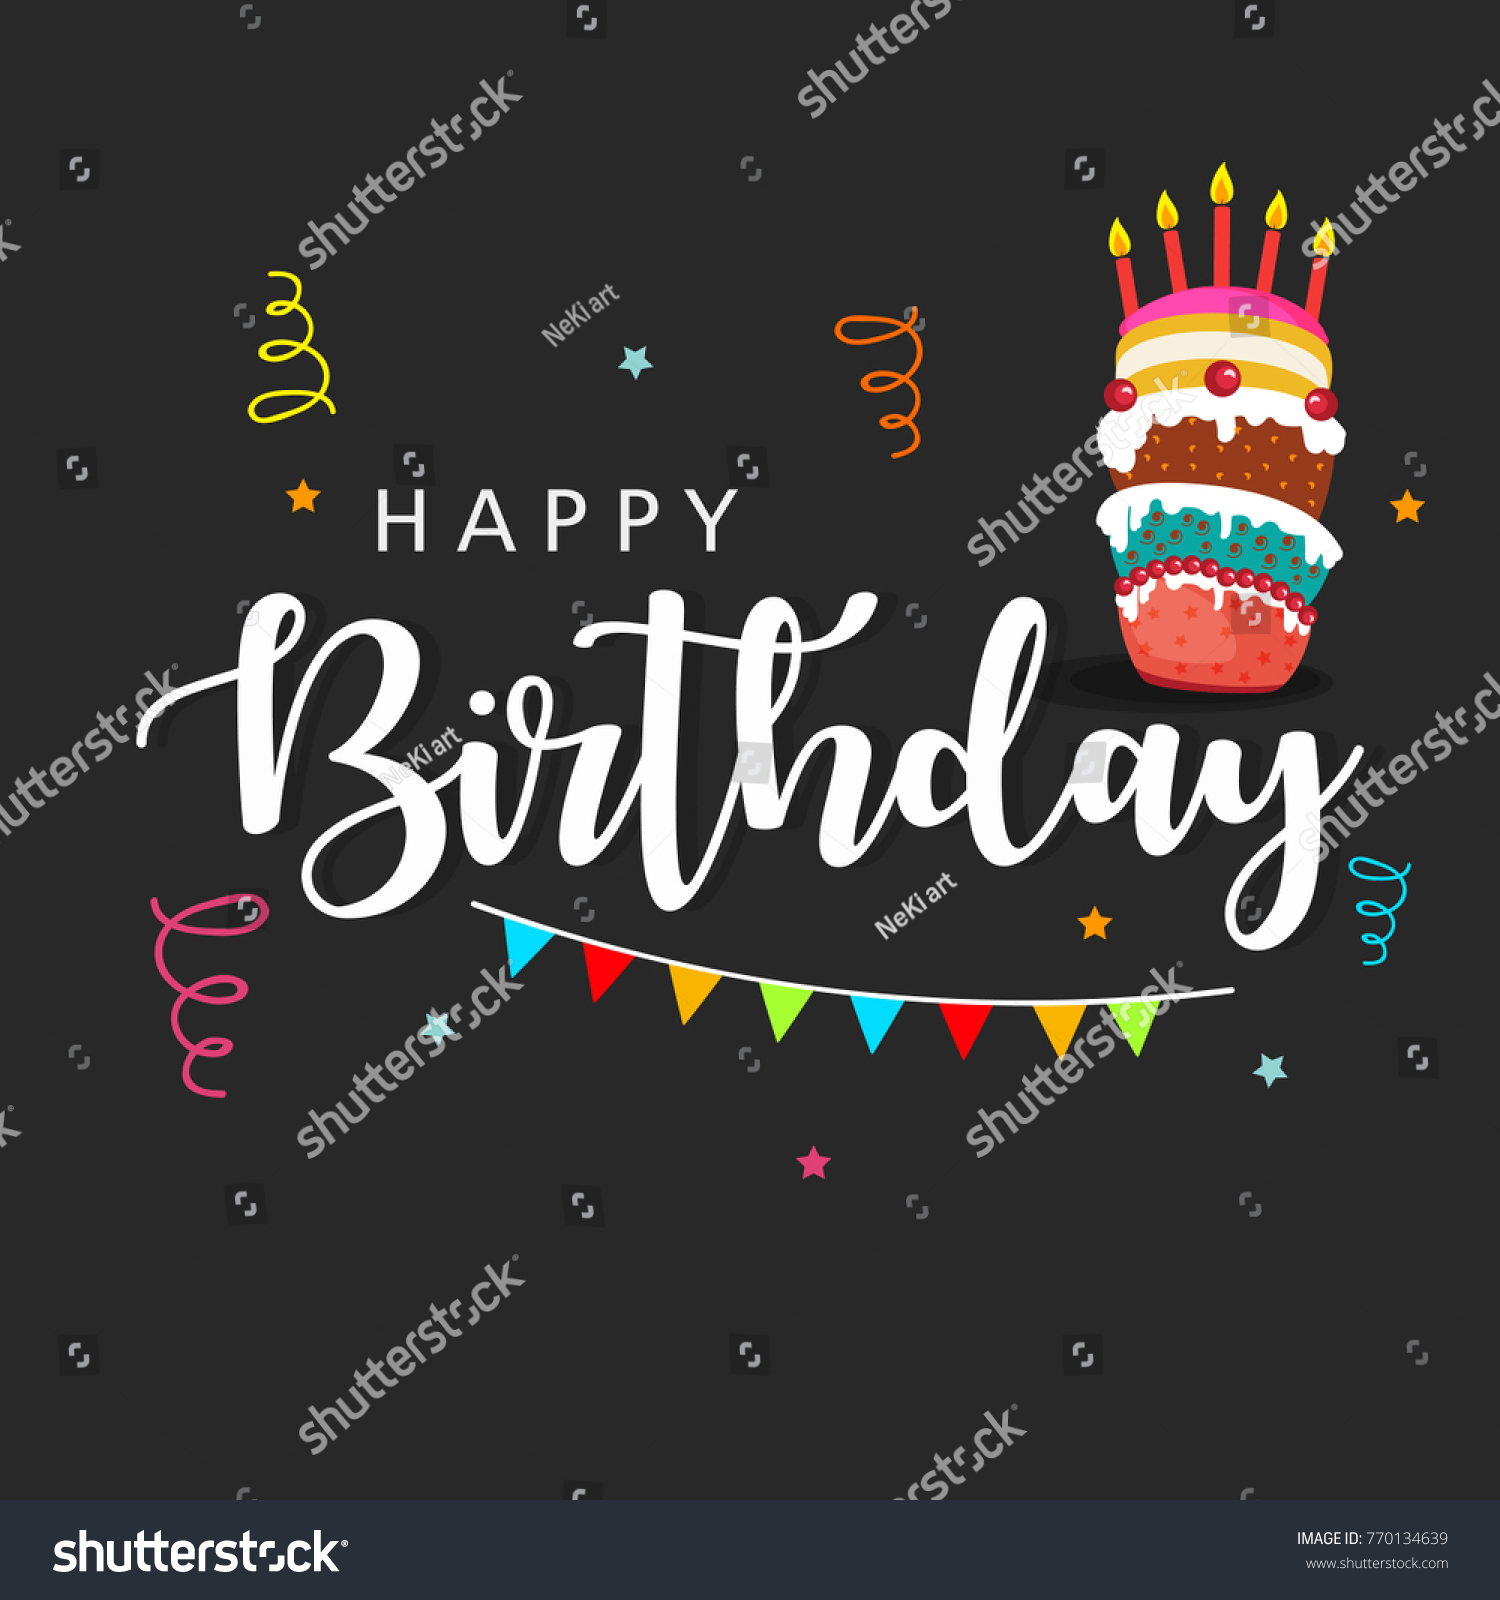 Happy birthday wishing greeting card decorated stock vector happy birthday wishing greeting card with decorated background with elements like realistic balloons gift boxes kristyandbryce Images